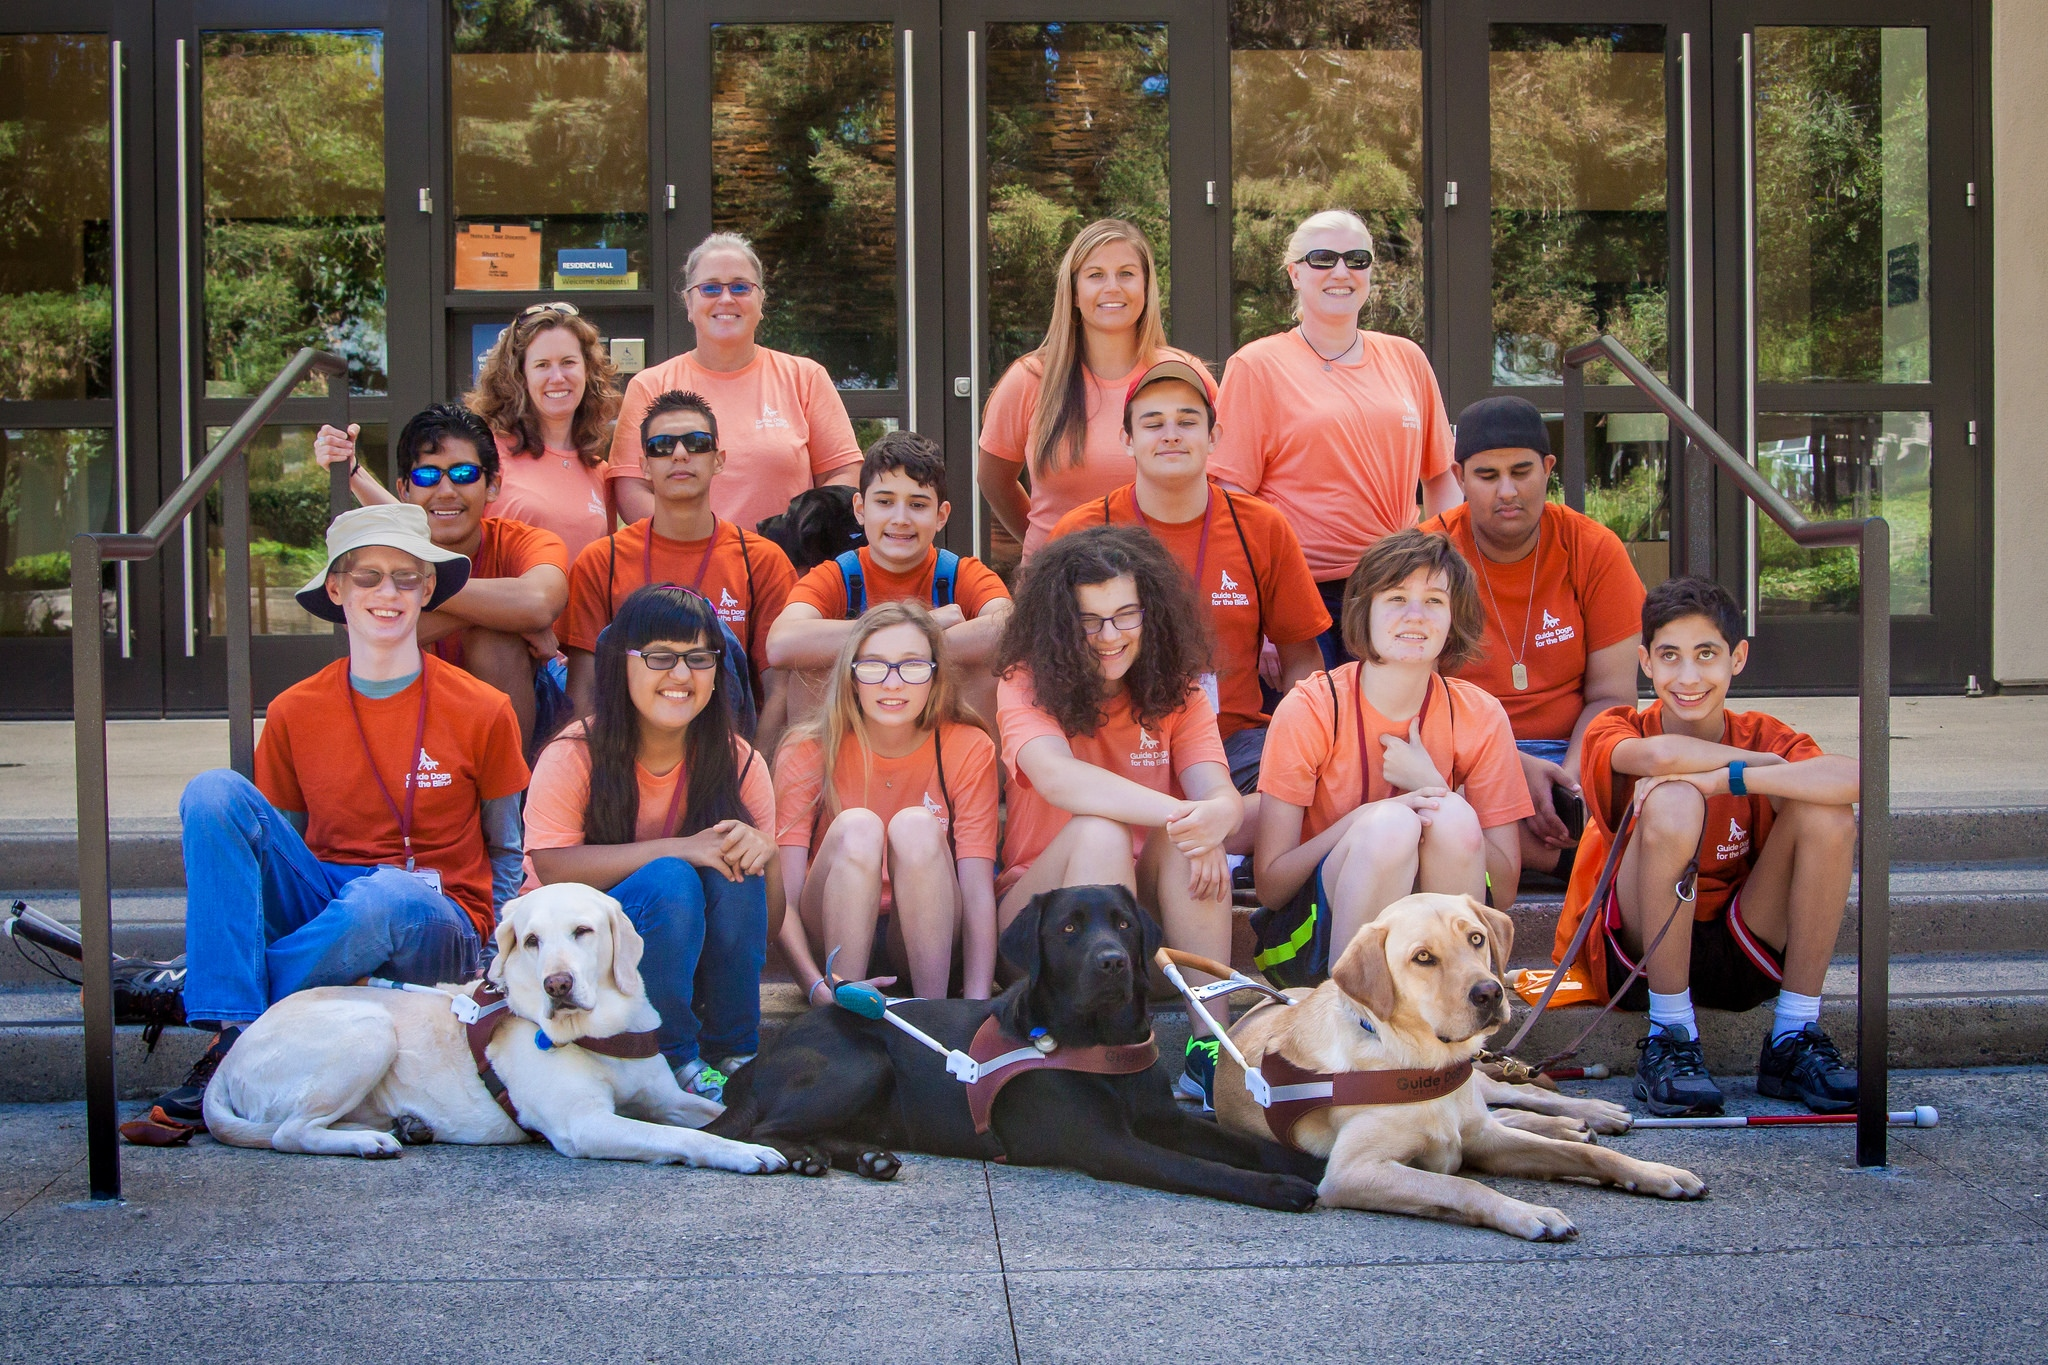 Several GDB campers smile while sitting on the bench with GDB staff and dogs